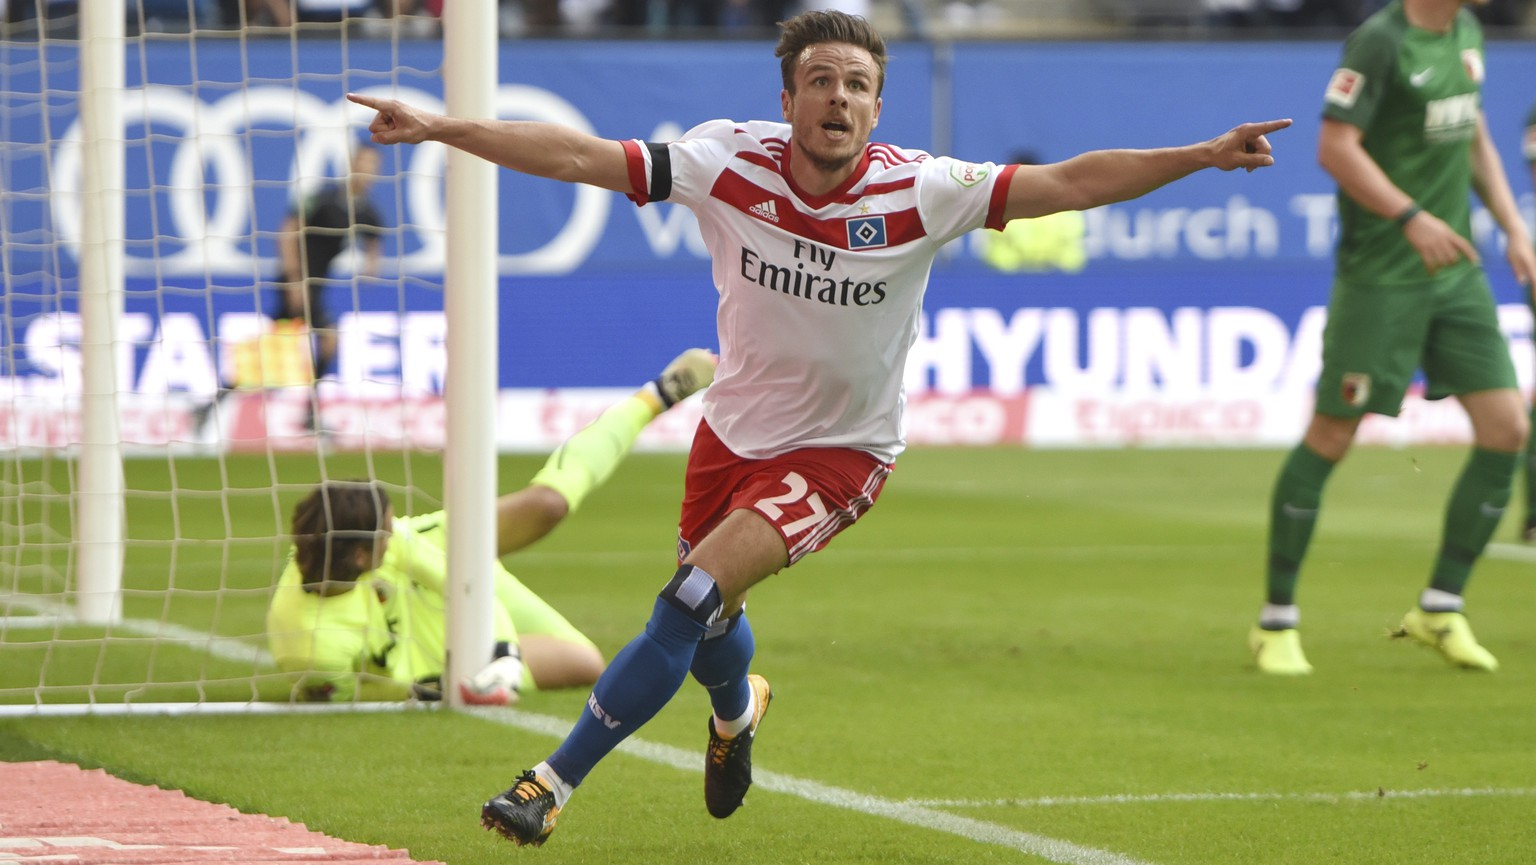 Hamburg's Nicolai Mueller celebrates his goal during the the German Bundesliga soccer match between Hamburger SV and FC Augsburg in Hamburg, Germany, Saturday, Aug. 19, 2017.  (Daniel Bockwoldt/dpa via AP)